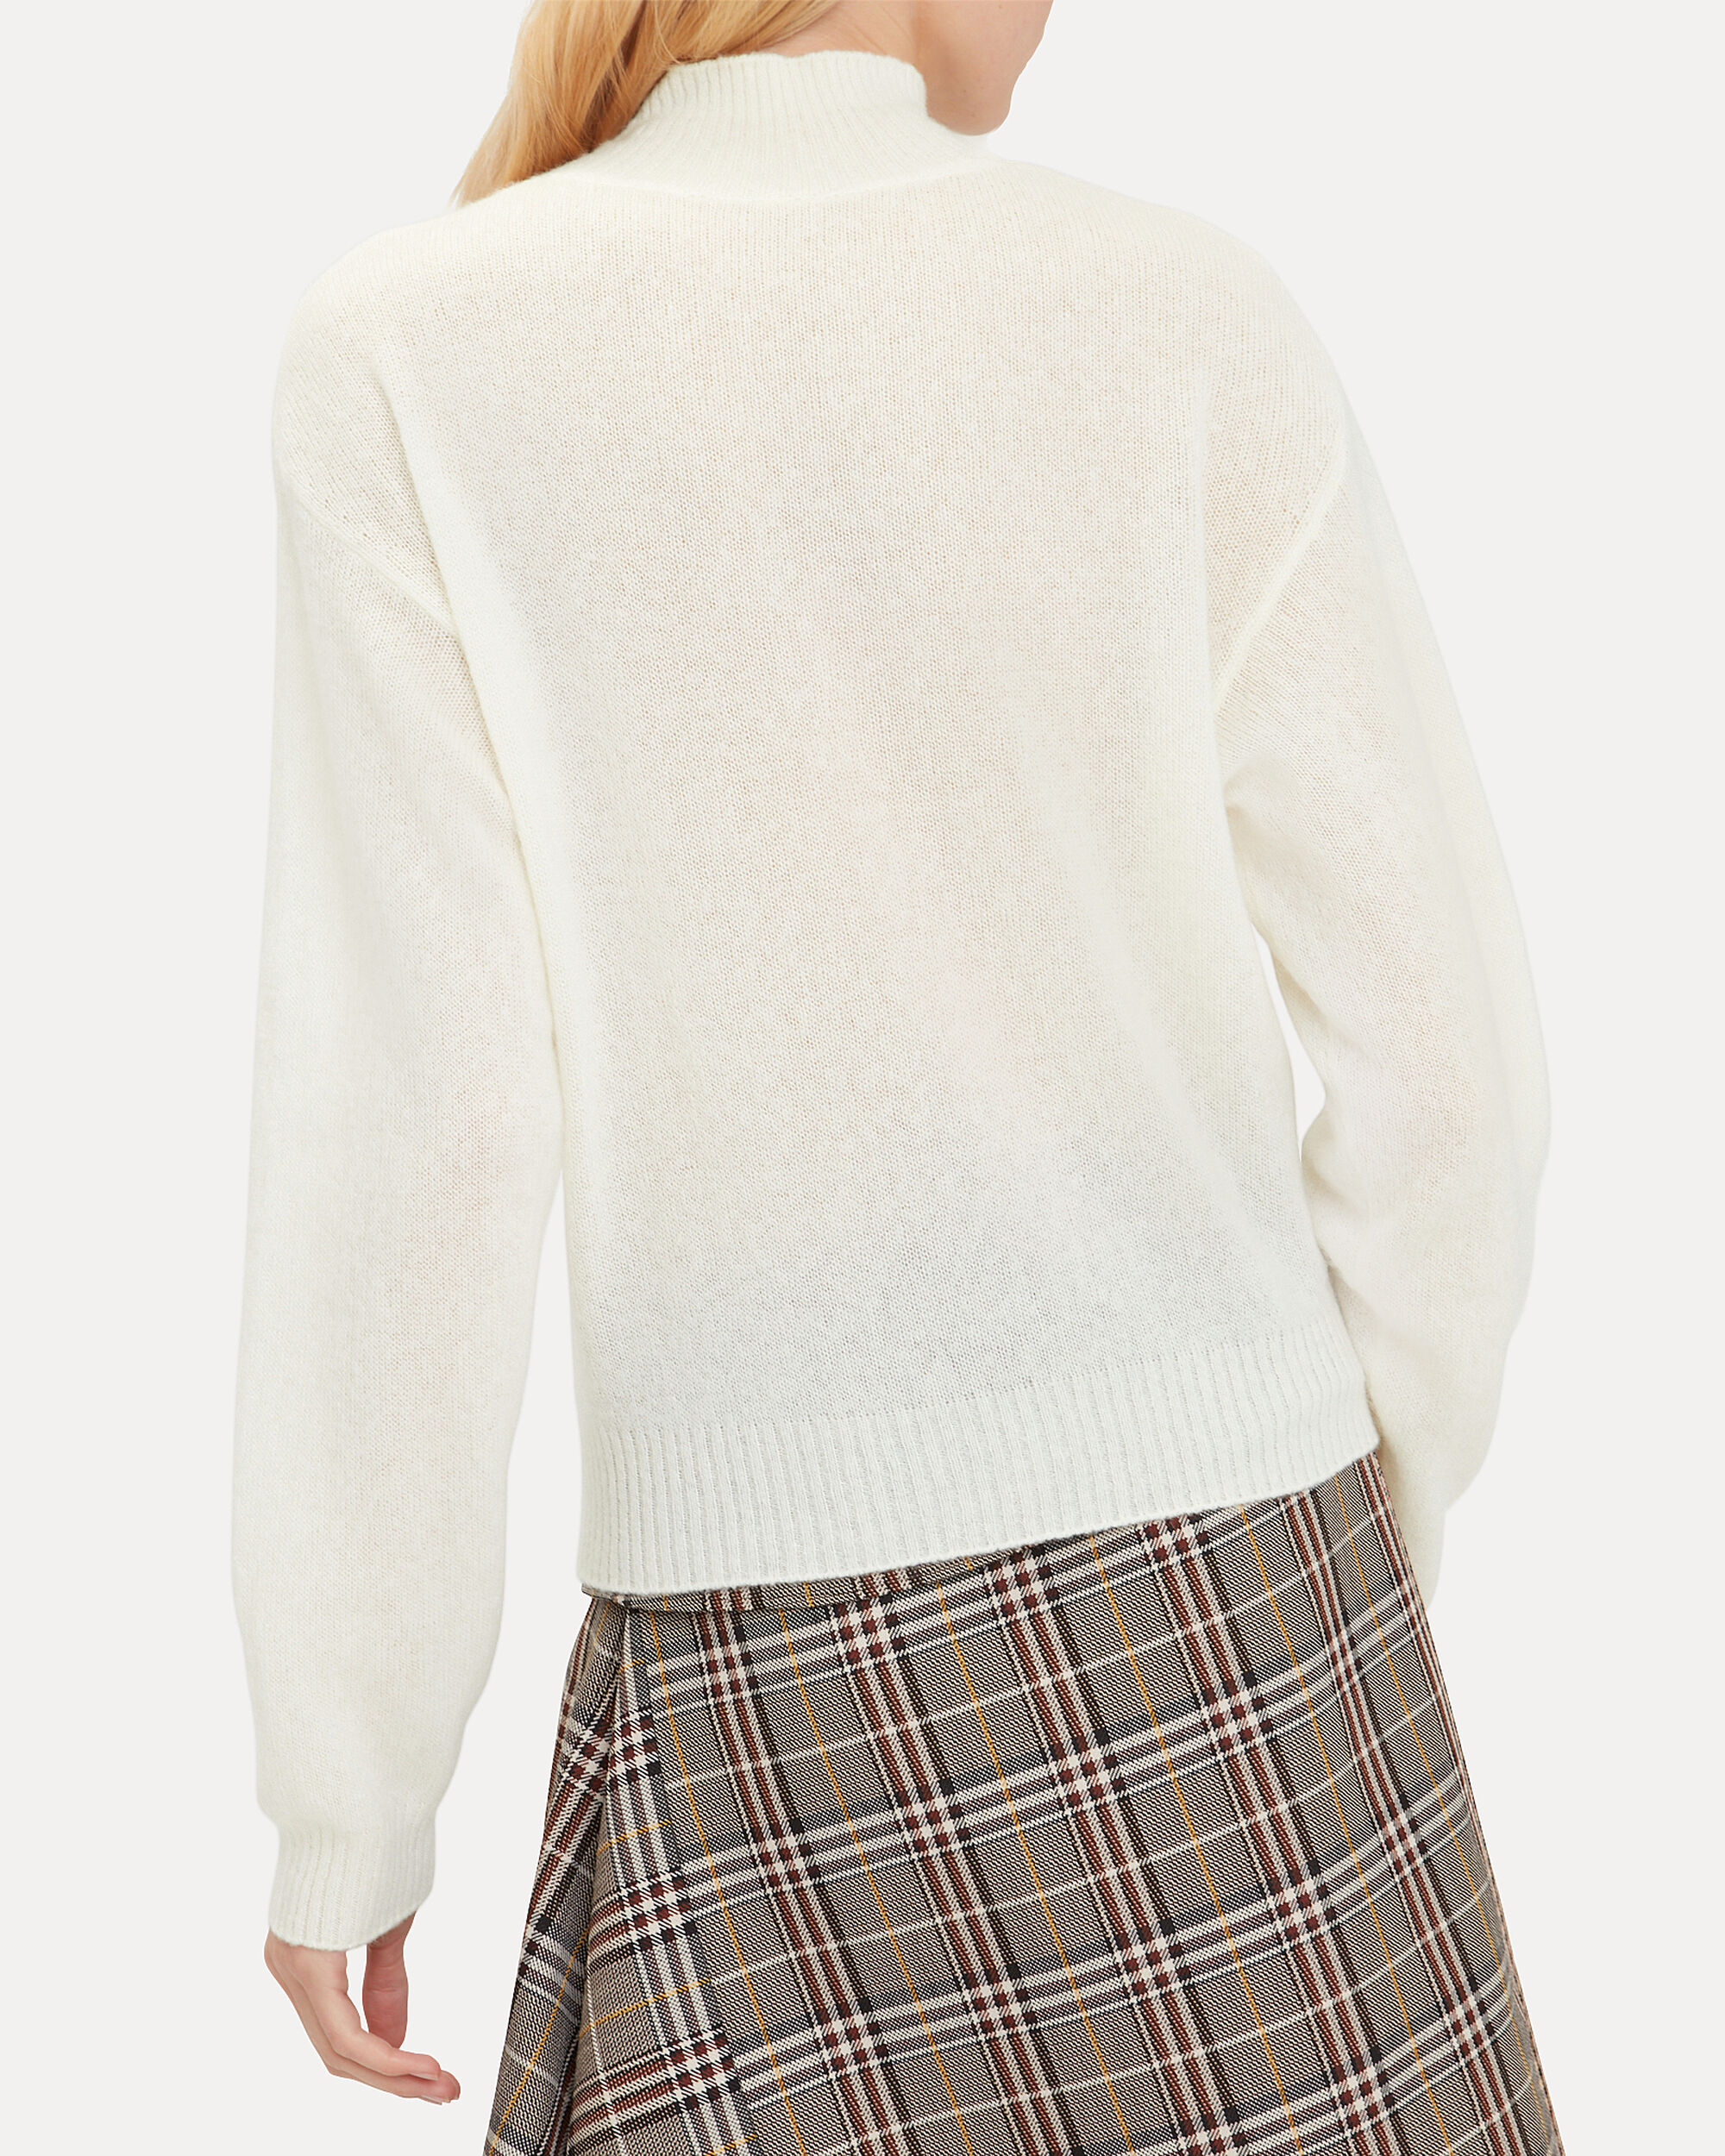 Brushed Cashmere Ivory Sweater, IVORY, hi-res